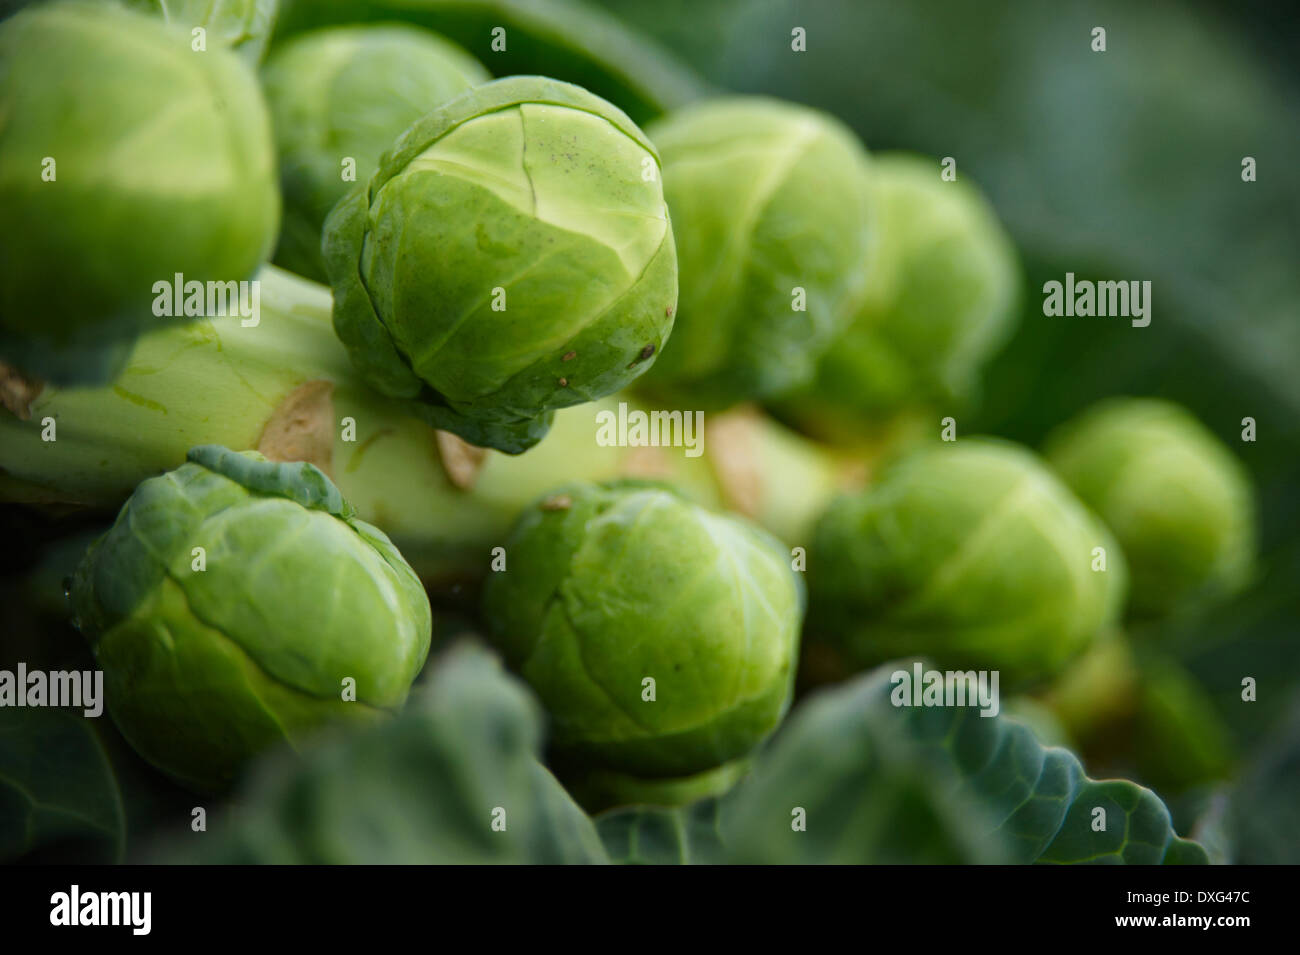 Close Up Of Brussel Sprouts Growing In Garden - Stock Image